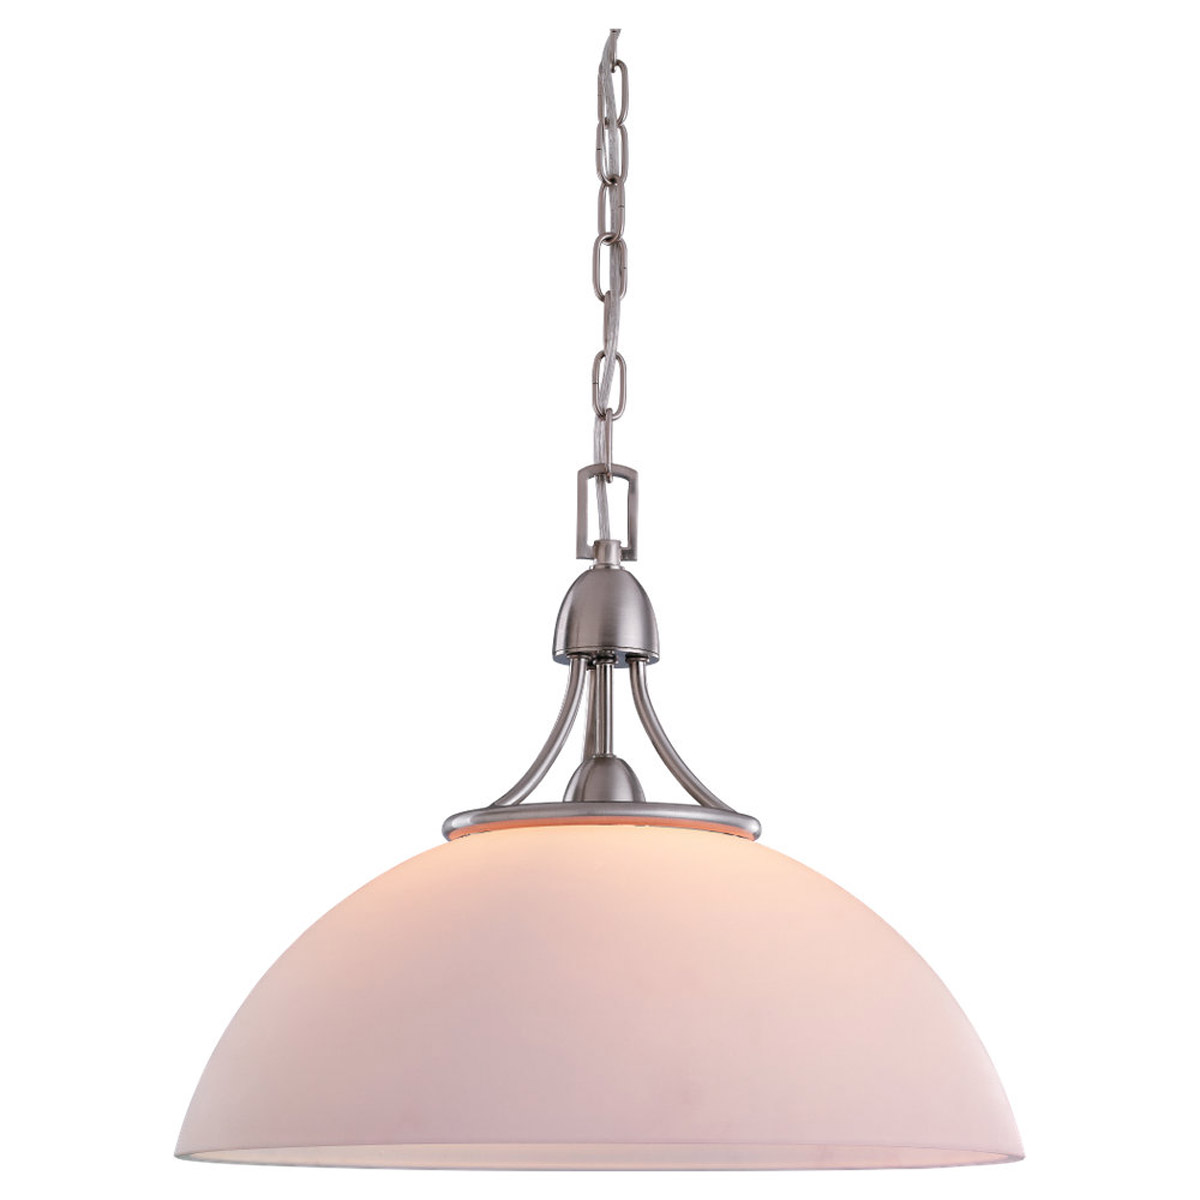 Sea Gull Lighting Stockholm 1 Light Pendant in Brushed Nickel 65385-962 photo